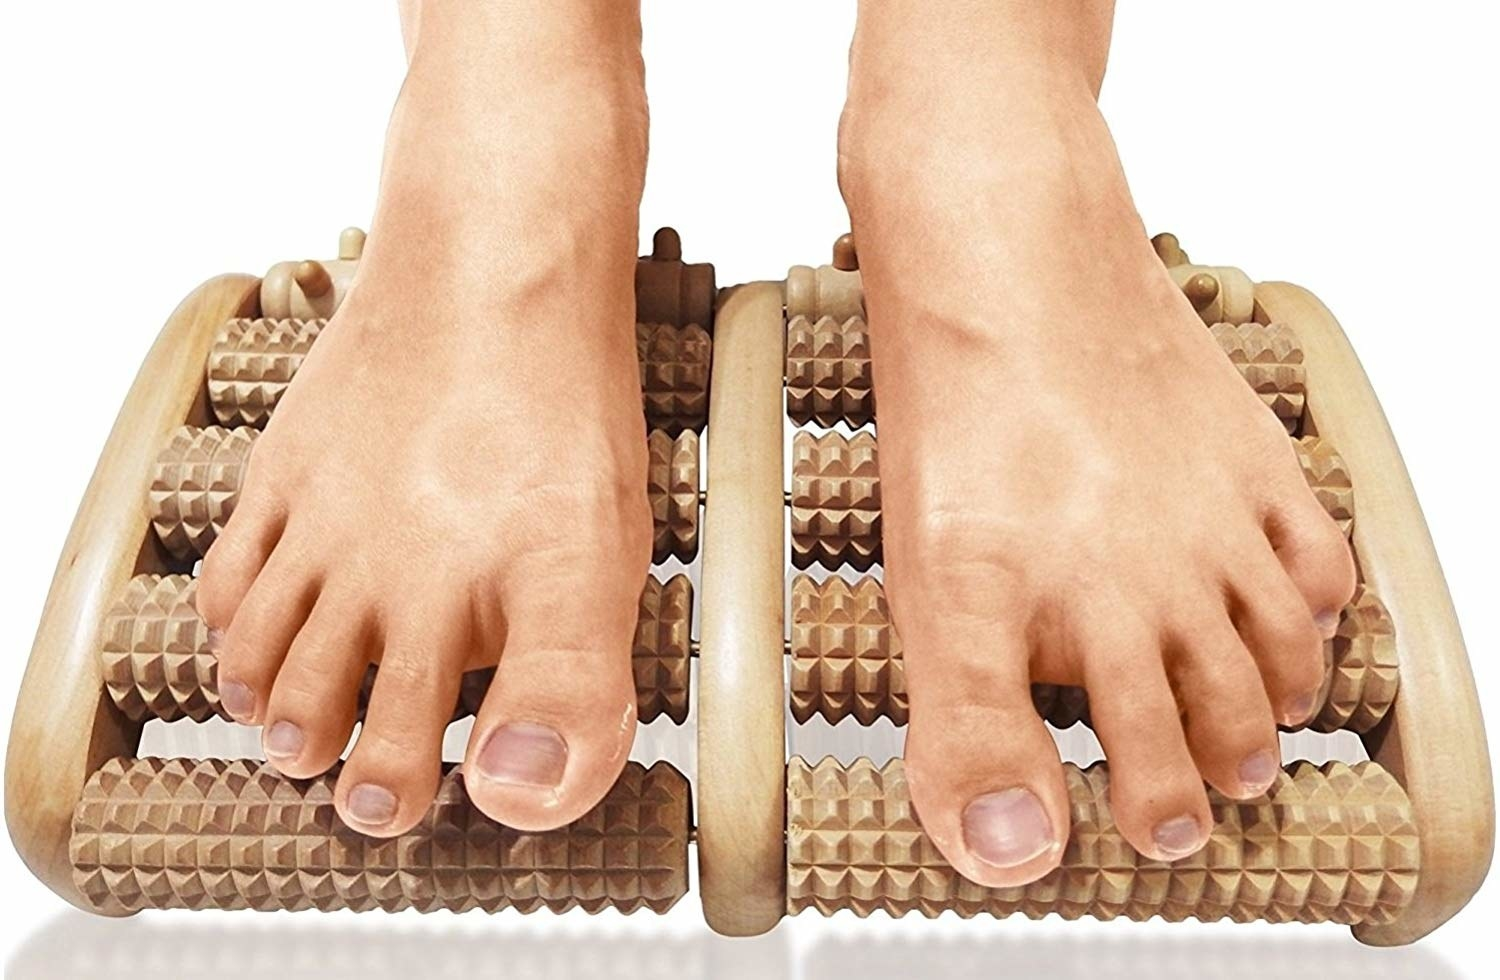 the wooden foot rest with multiple rollers under each foot